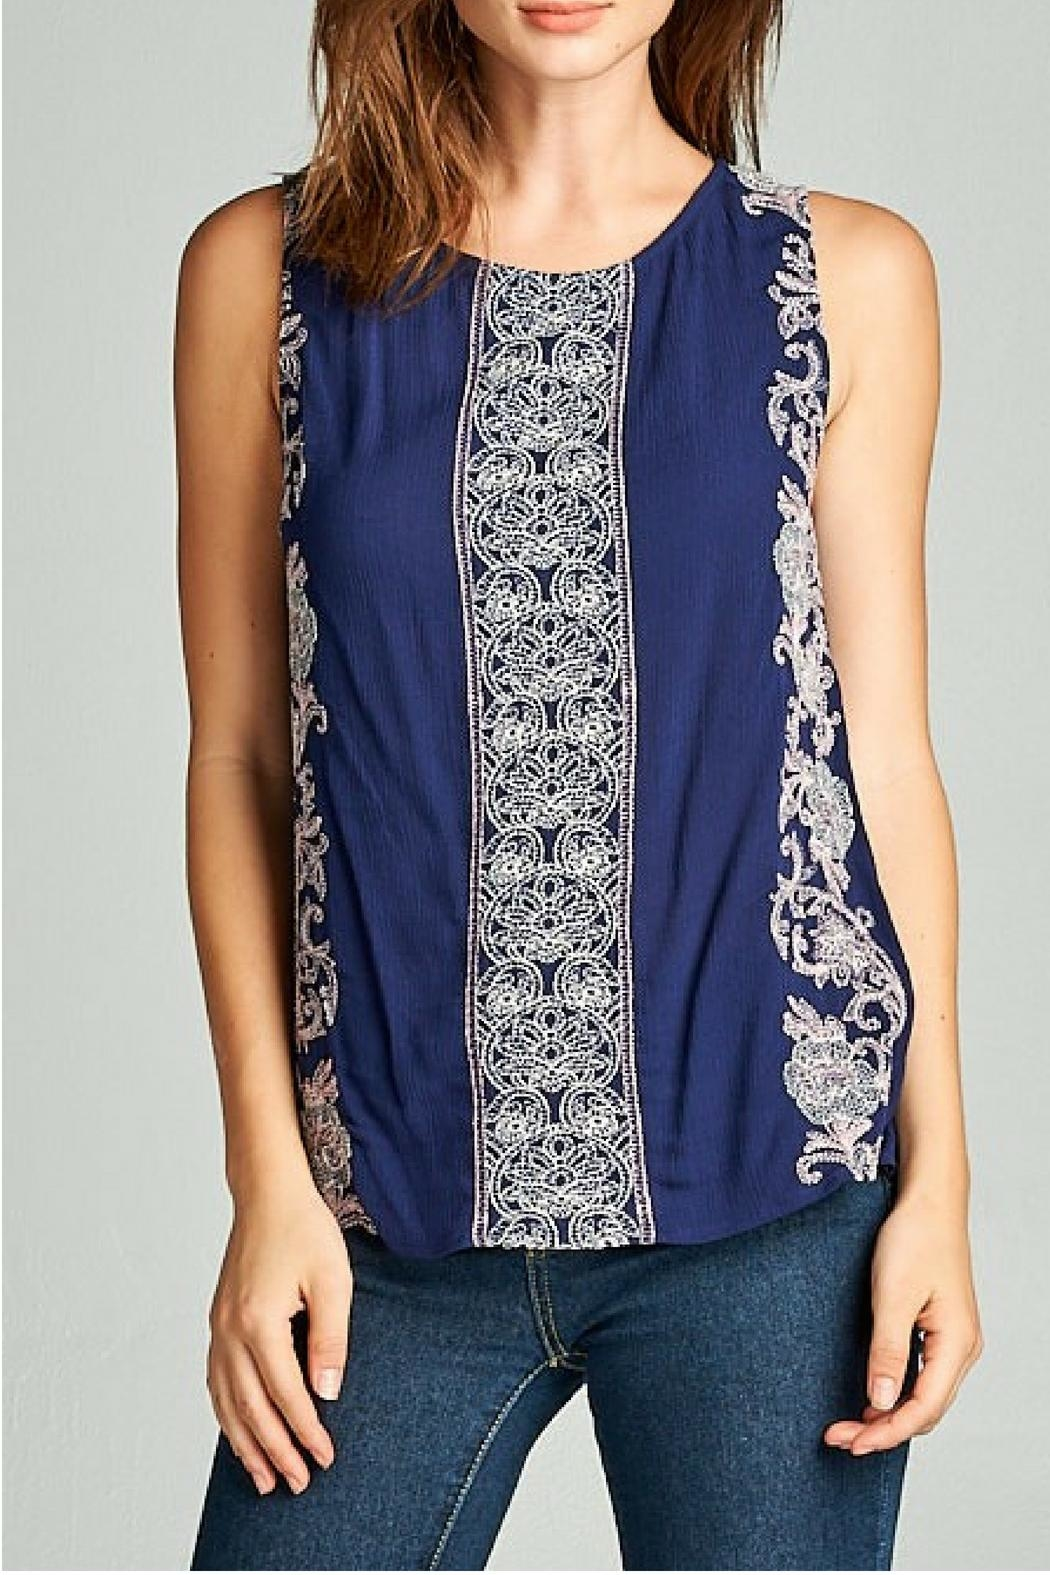 Renee C Navy Fishtail Blouse - Front Cropped Image